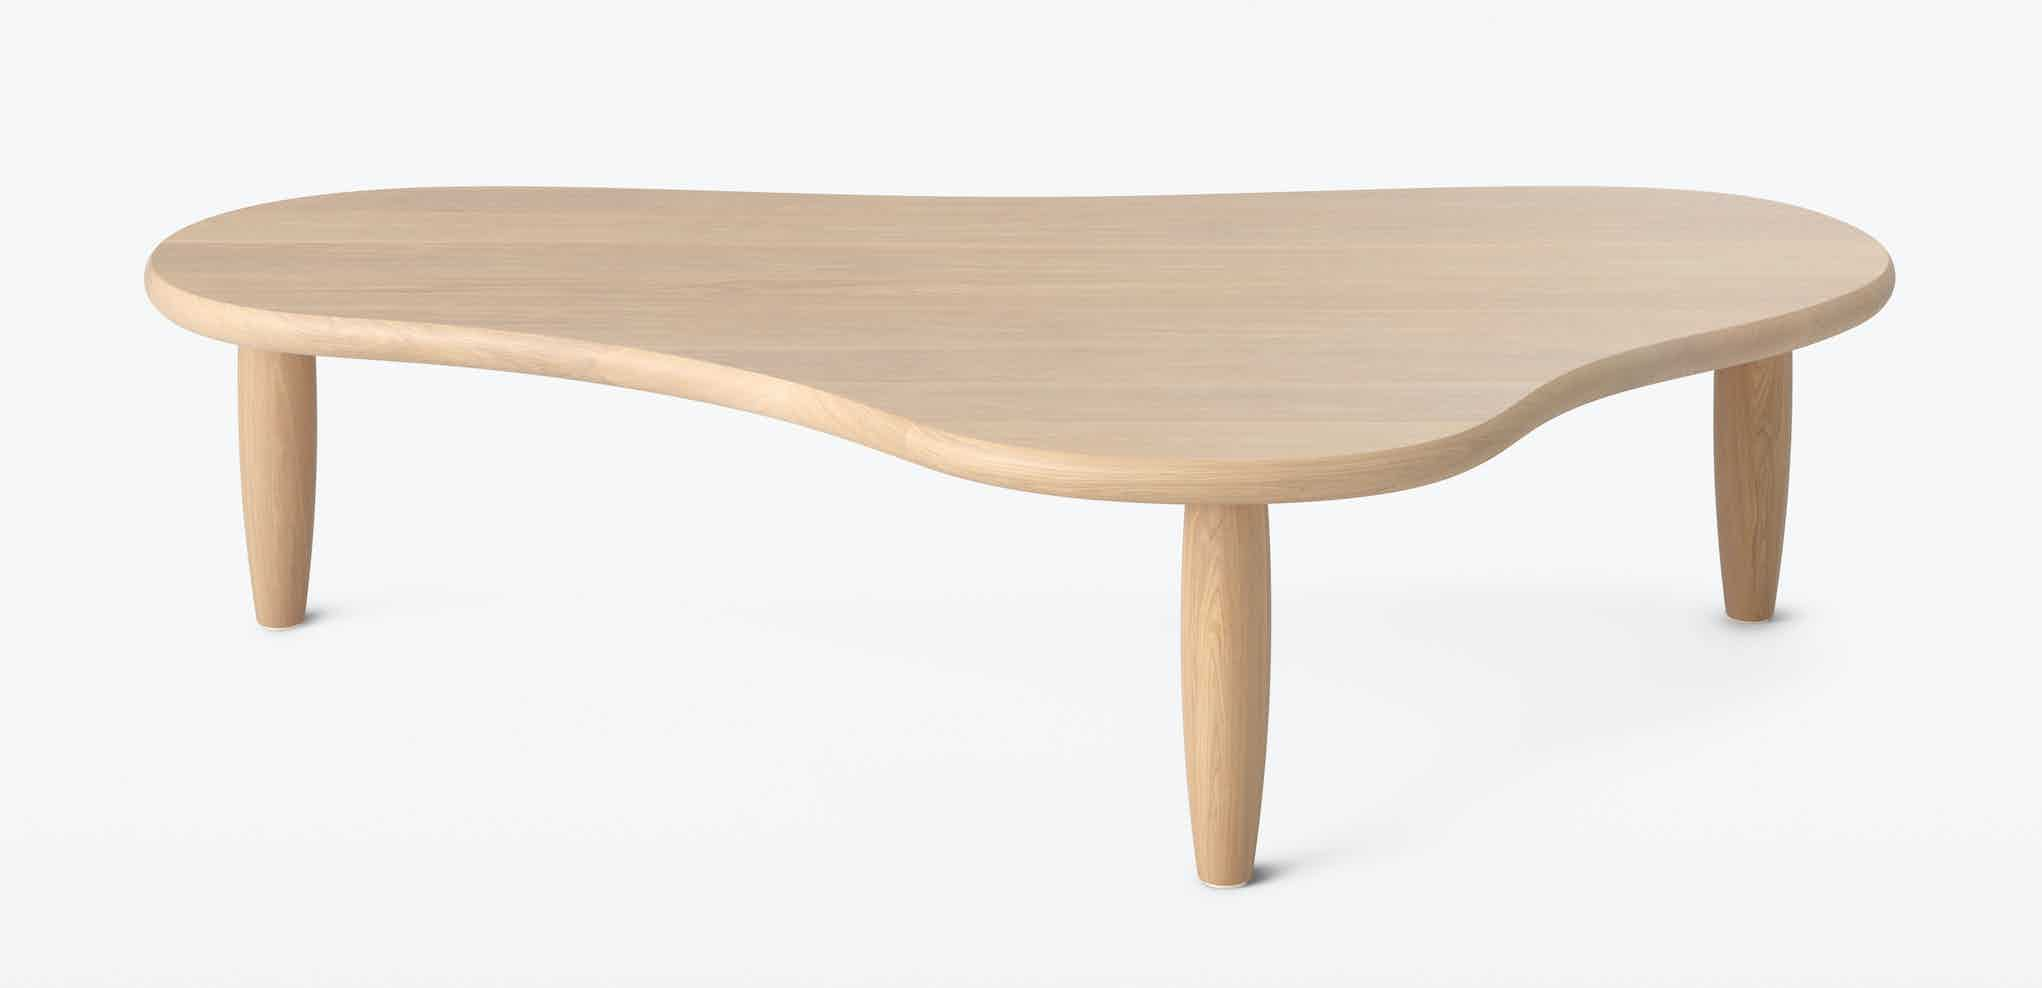 Oak Puddle Table By Massproductions At Haute Living